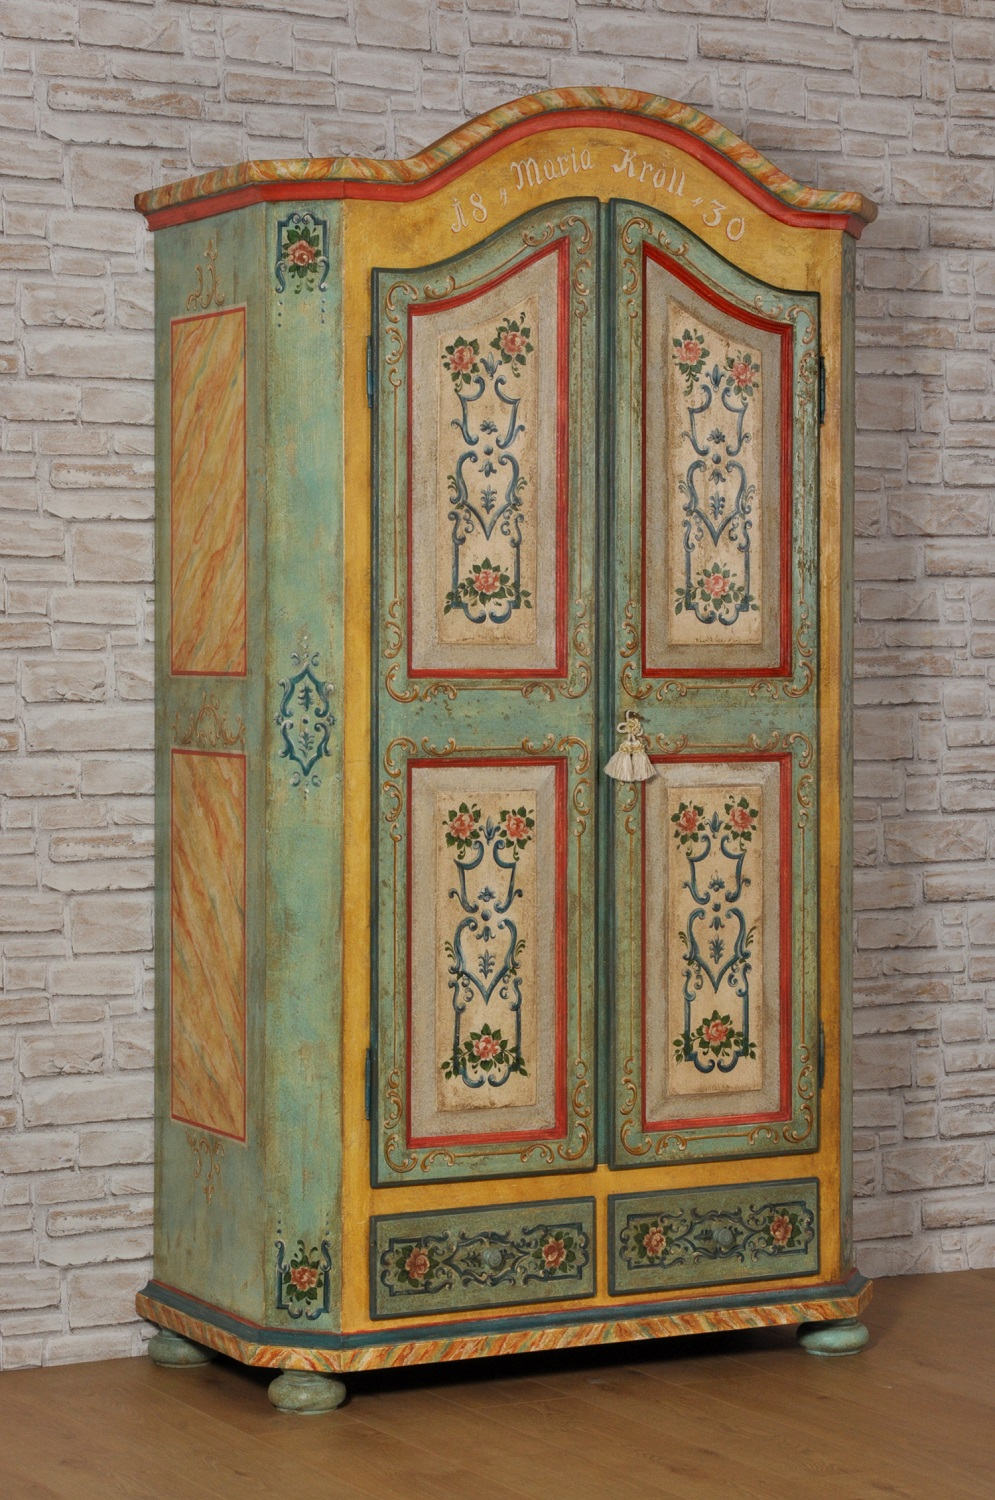 Armadio 4 Ante Decorato A Mano.Shaped Double Leaf Door And Moulding Hand Decorated 600 Tyrolean